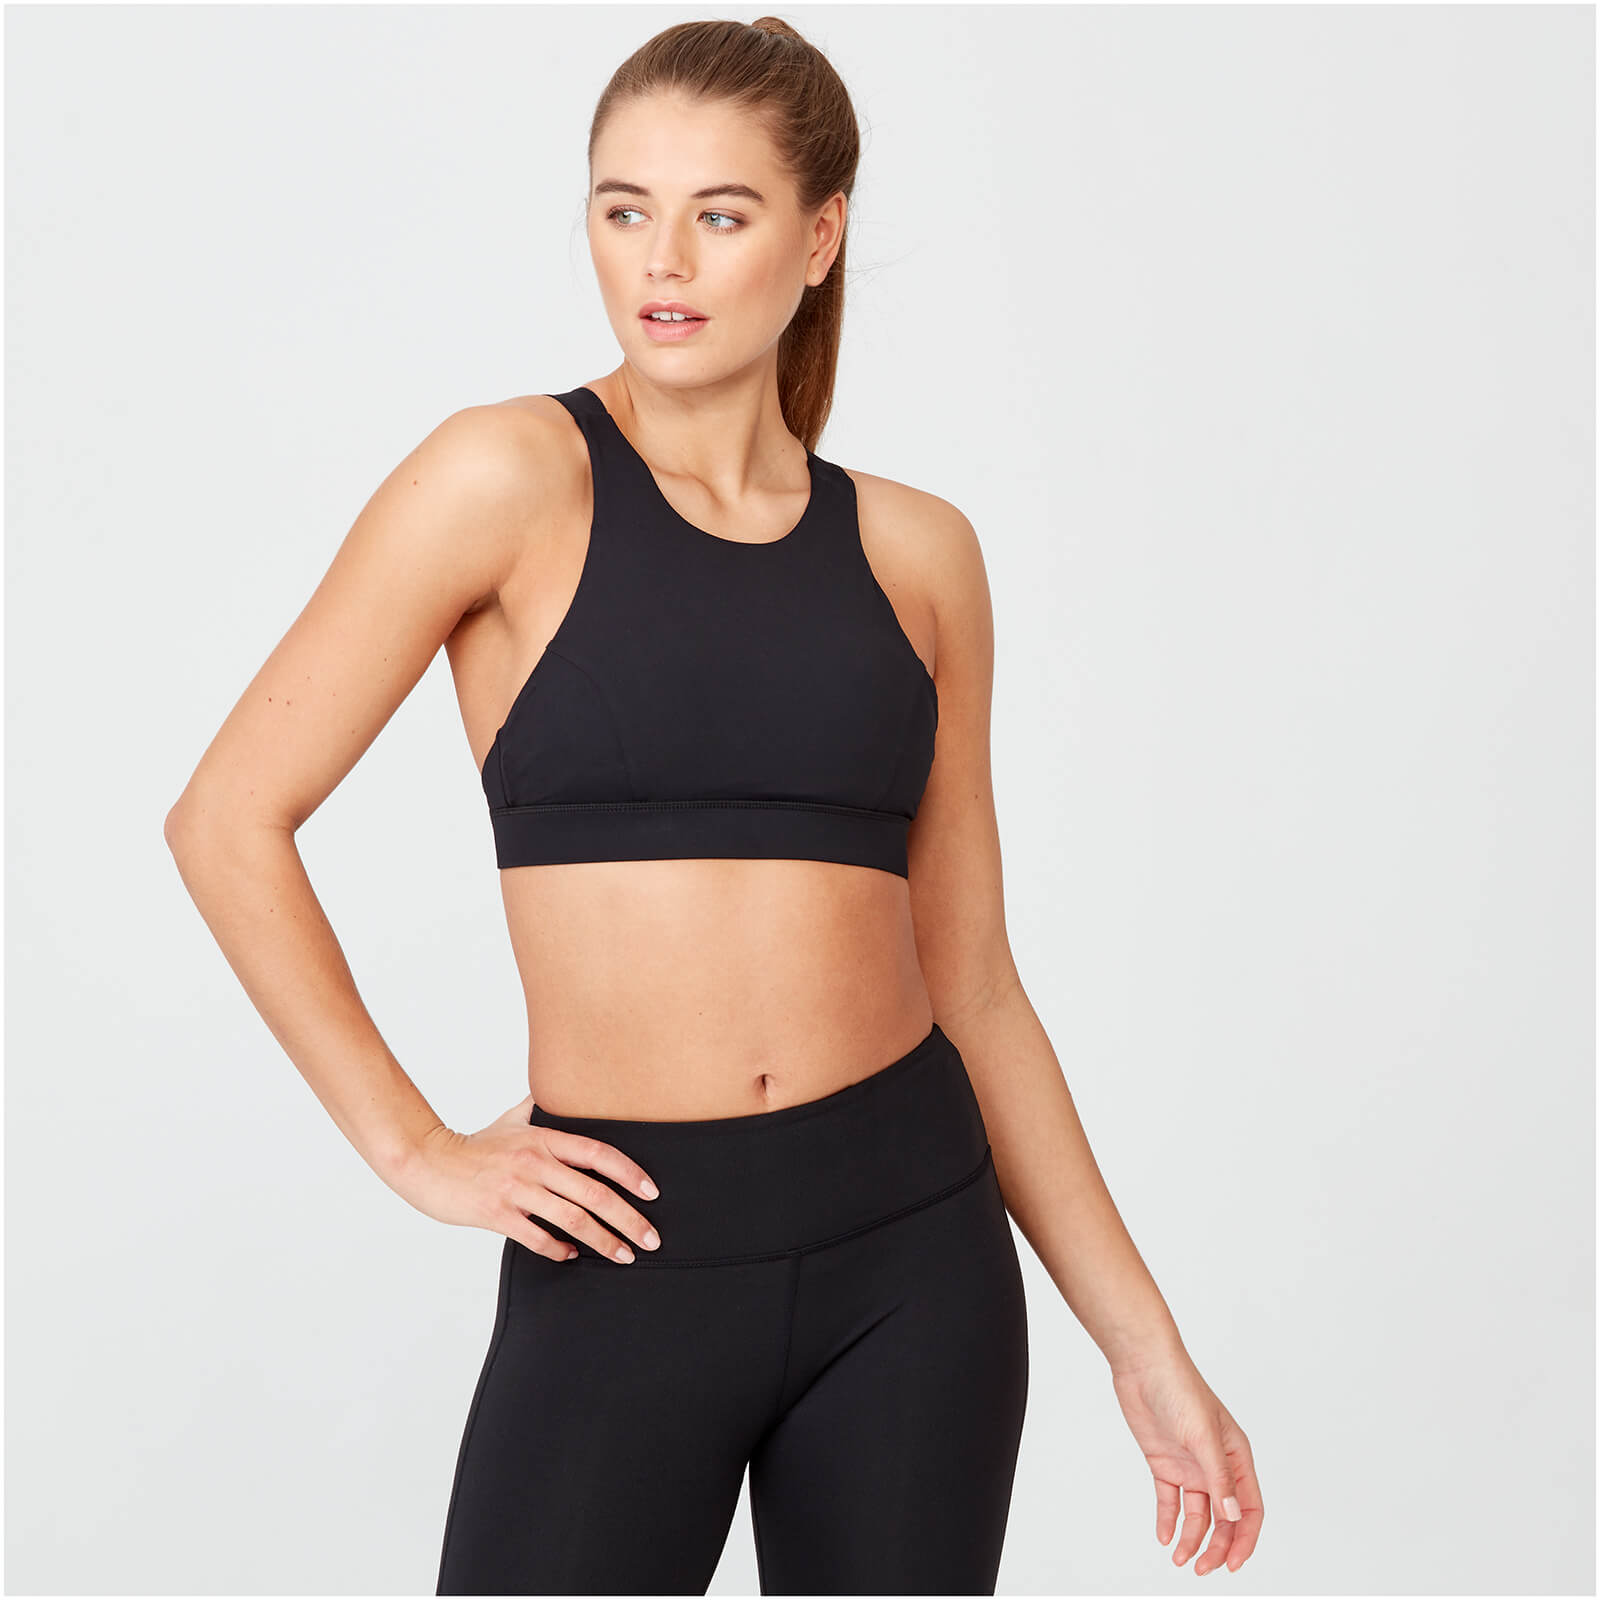 Racer Sports Bra - Black - XS